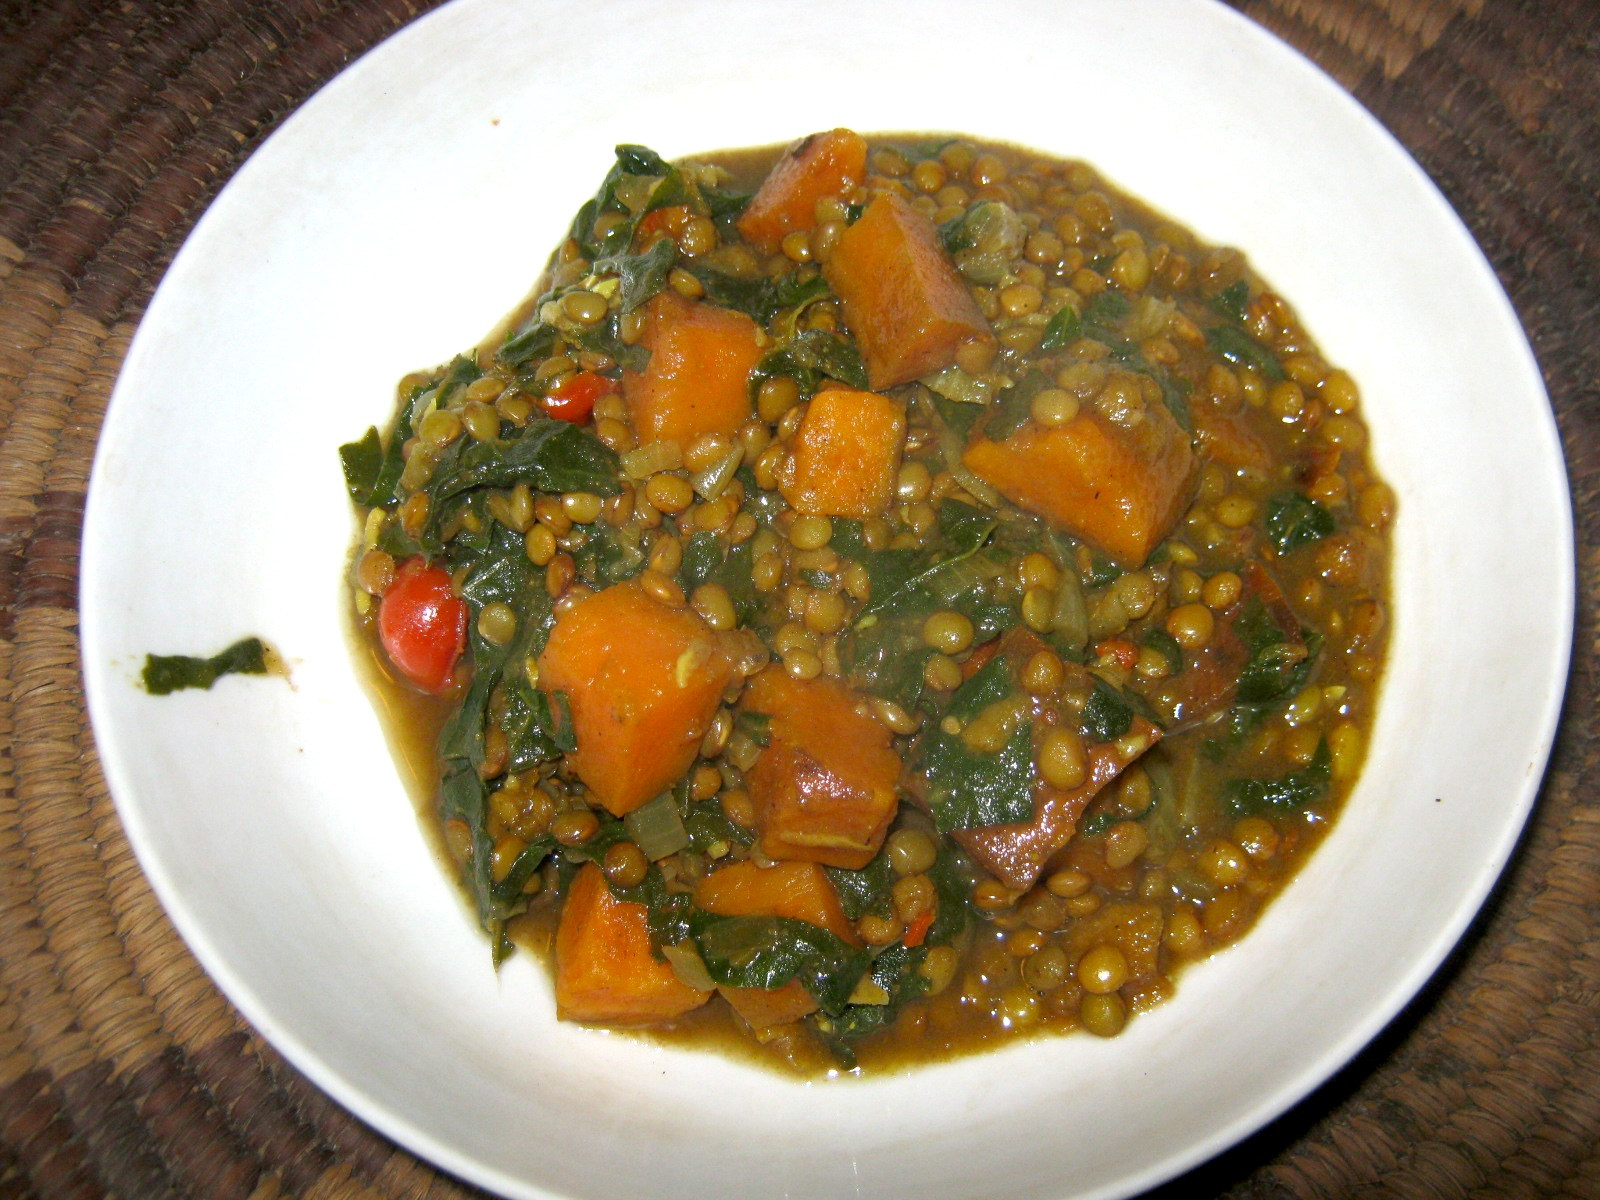 This Indian Dhal recipe with sweet potatoes and spinach was amongst the  top 10 recipes of May 2017